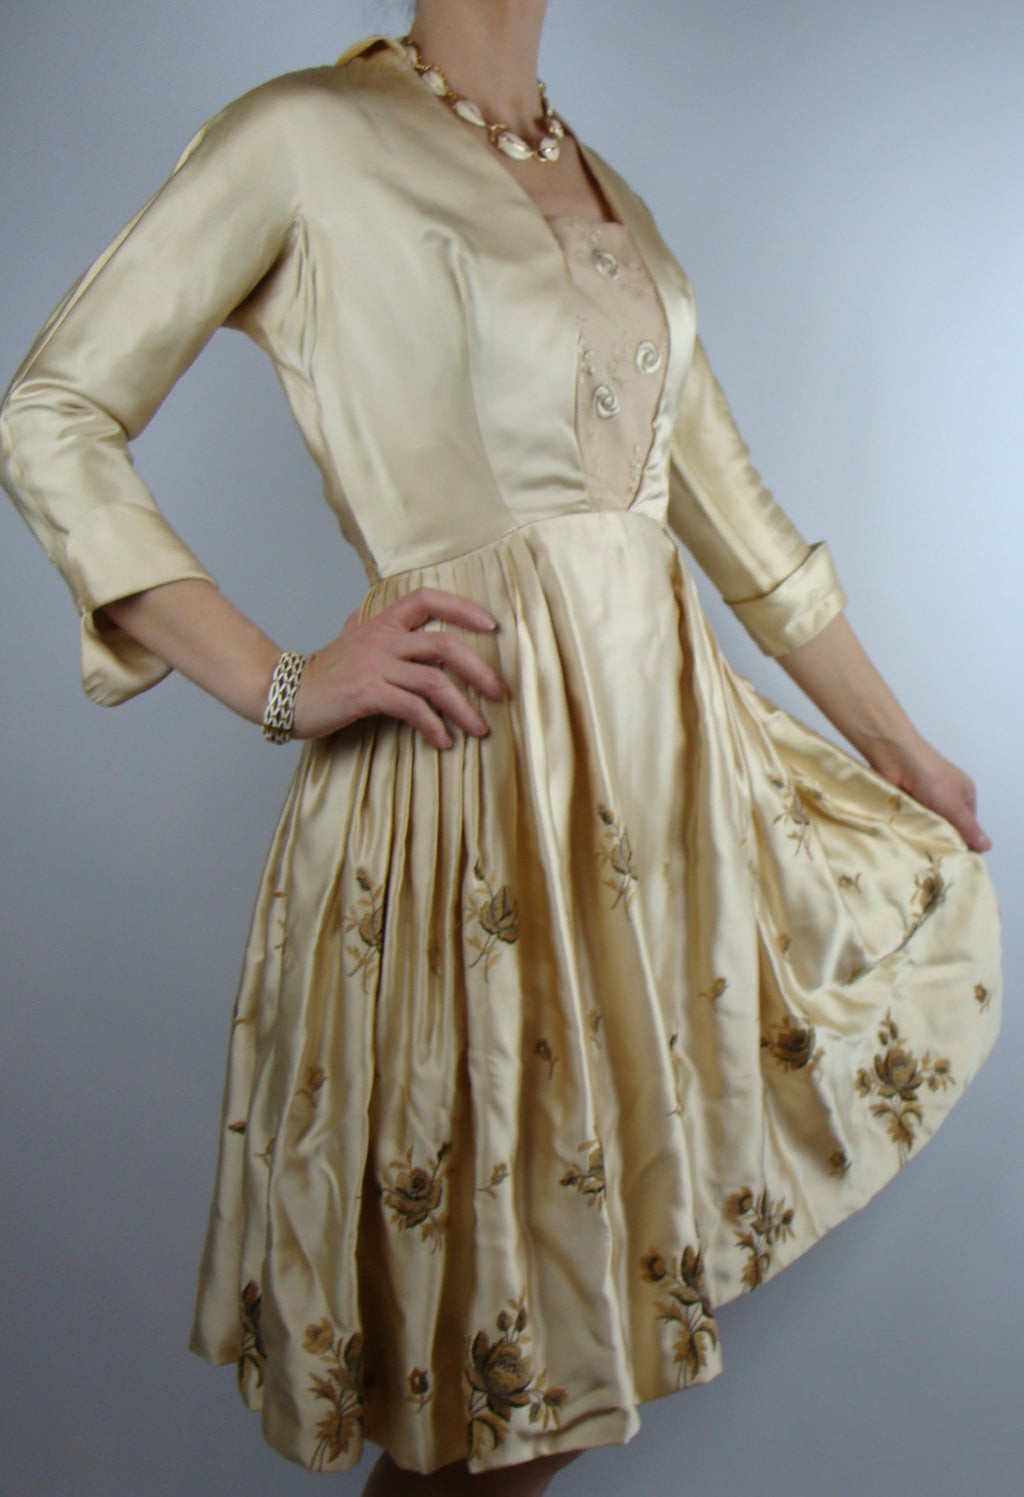 1950's CHAMPAGNE SATIN DRESS embroidered flowers S xs 1960's (A6)